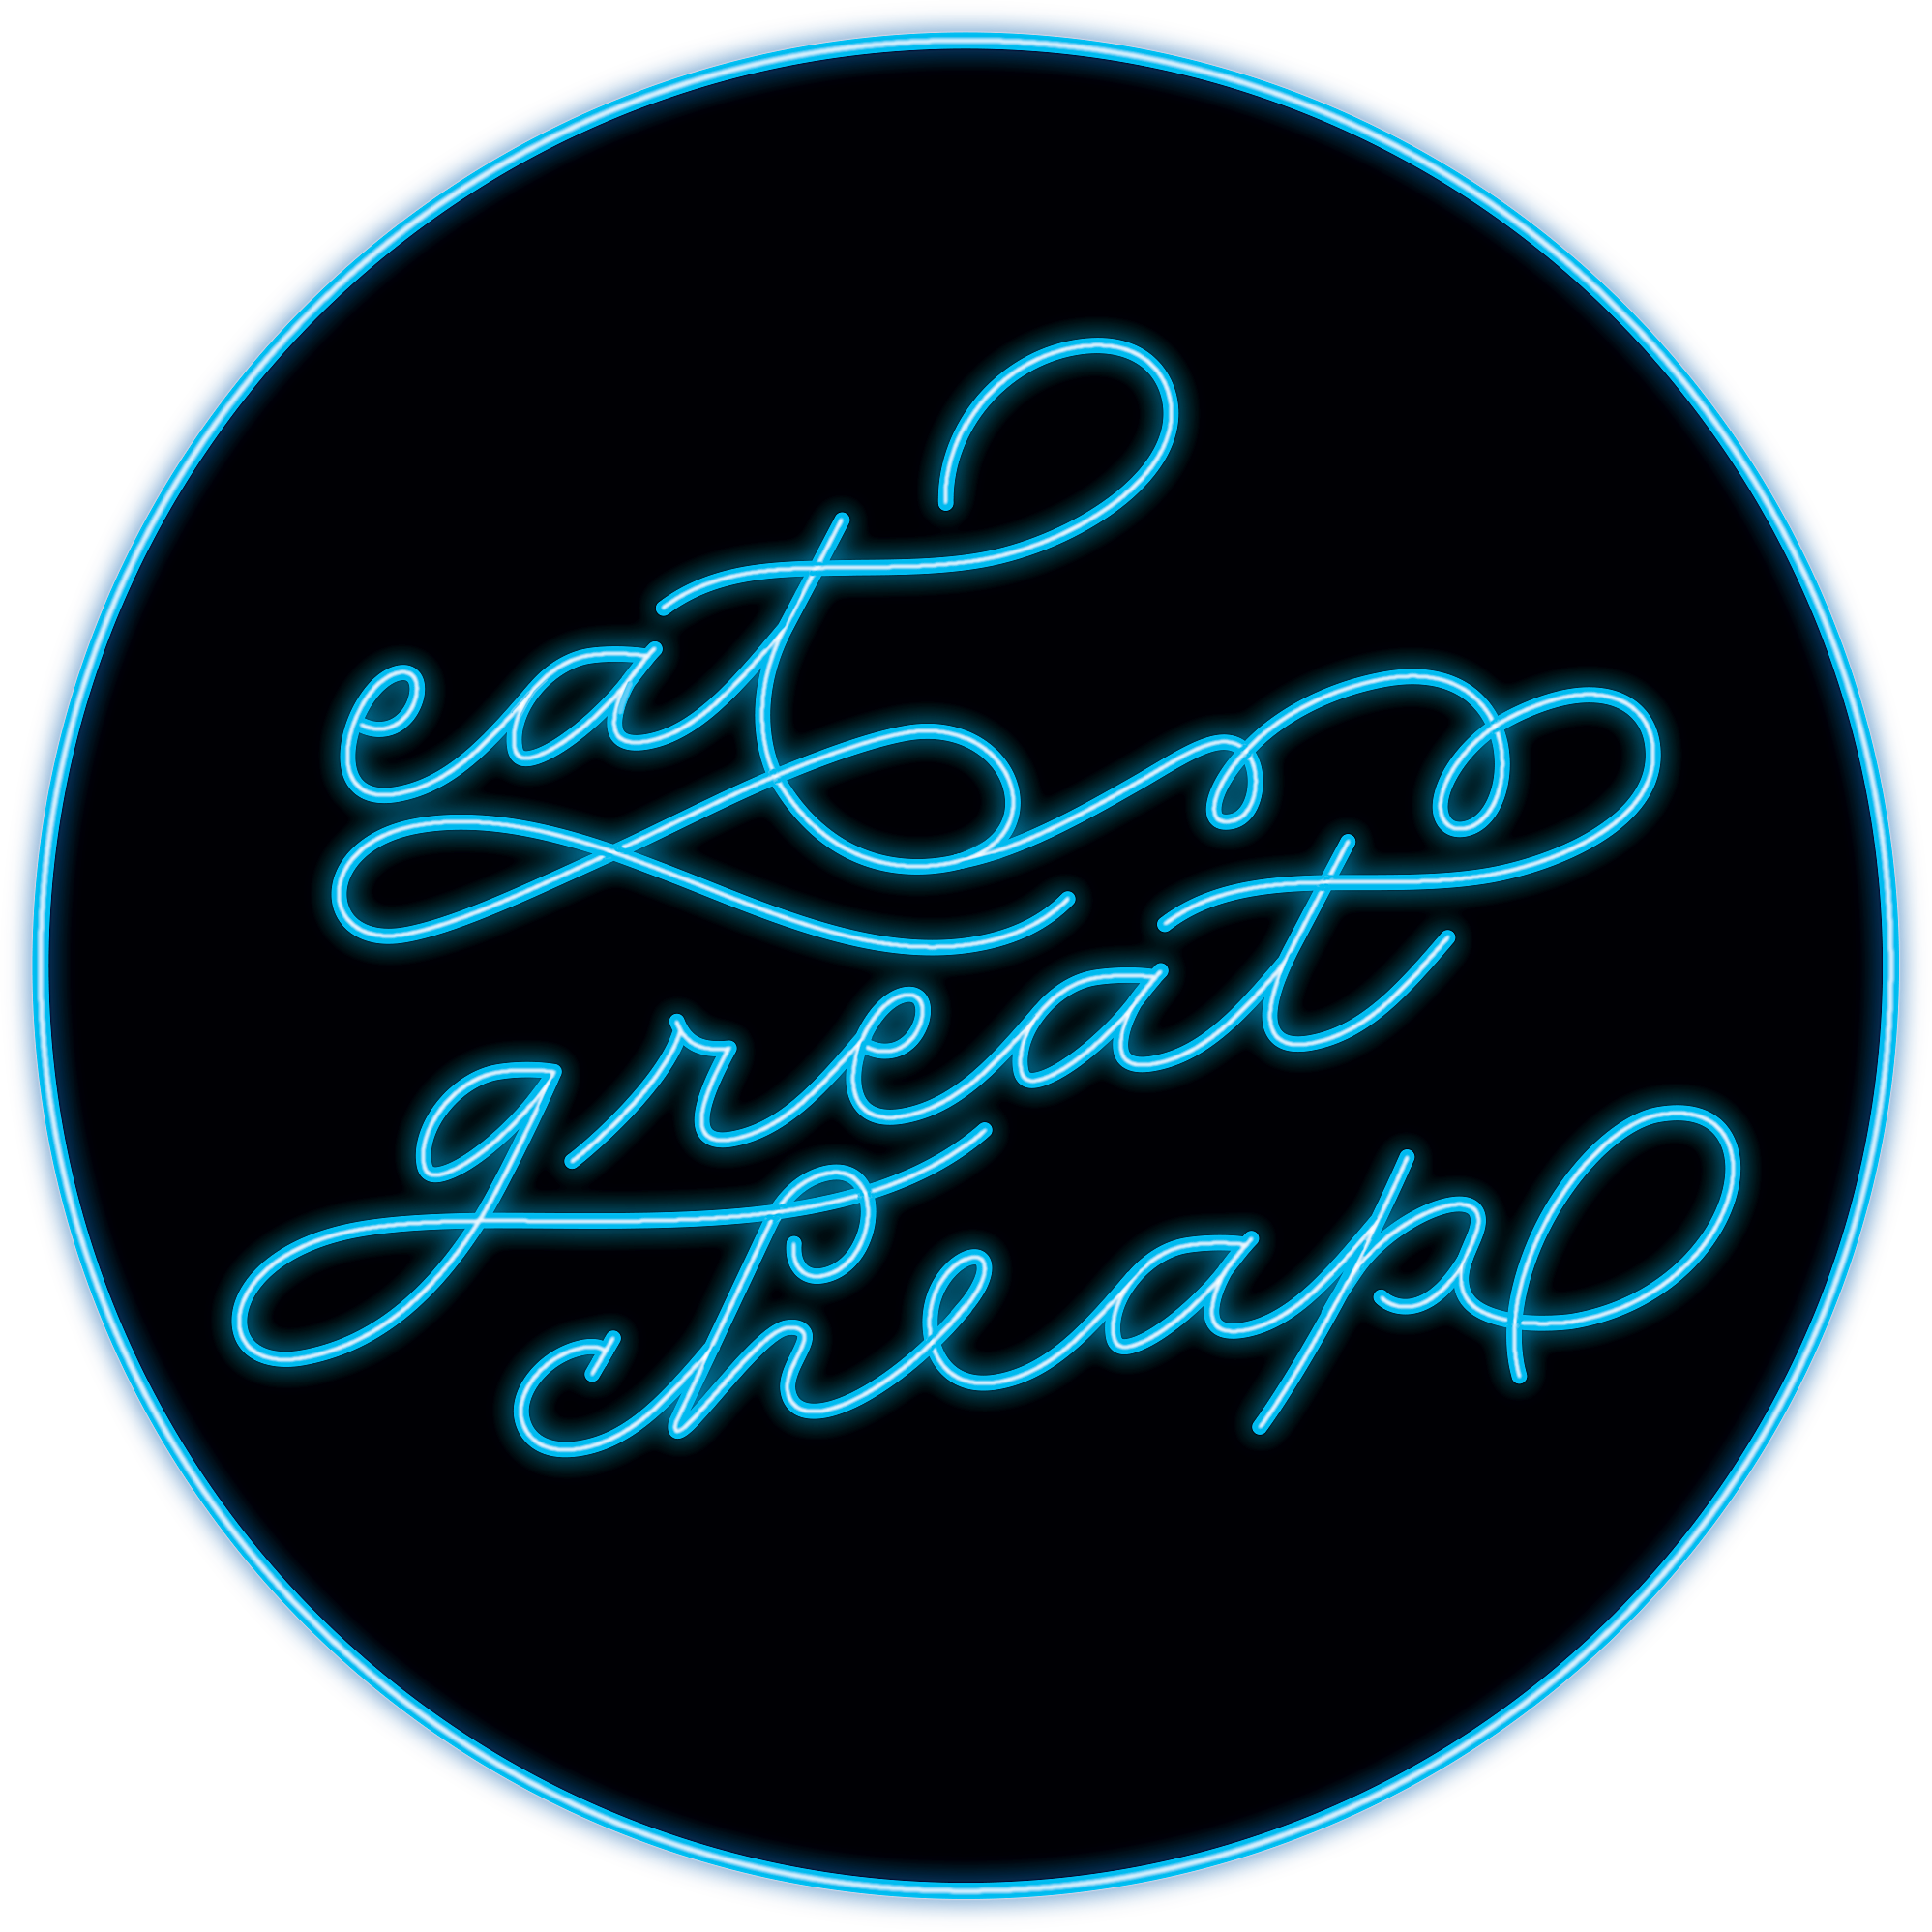 Eat Great Cheap 2019